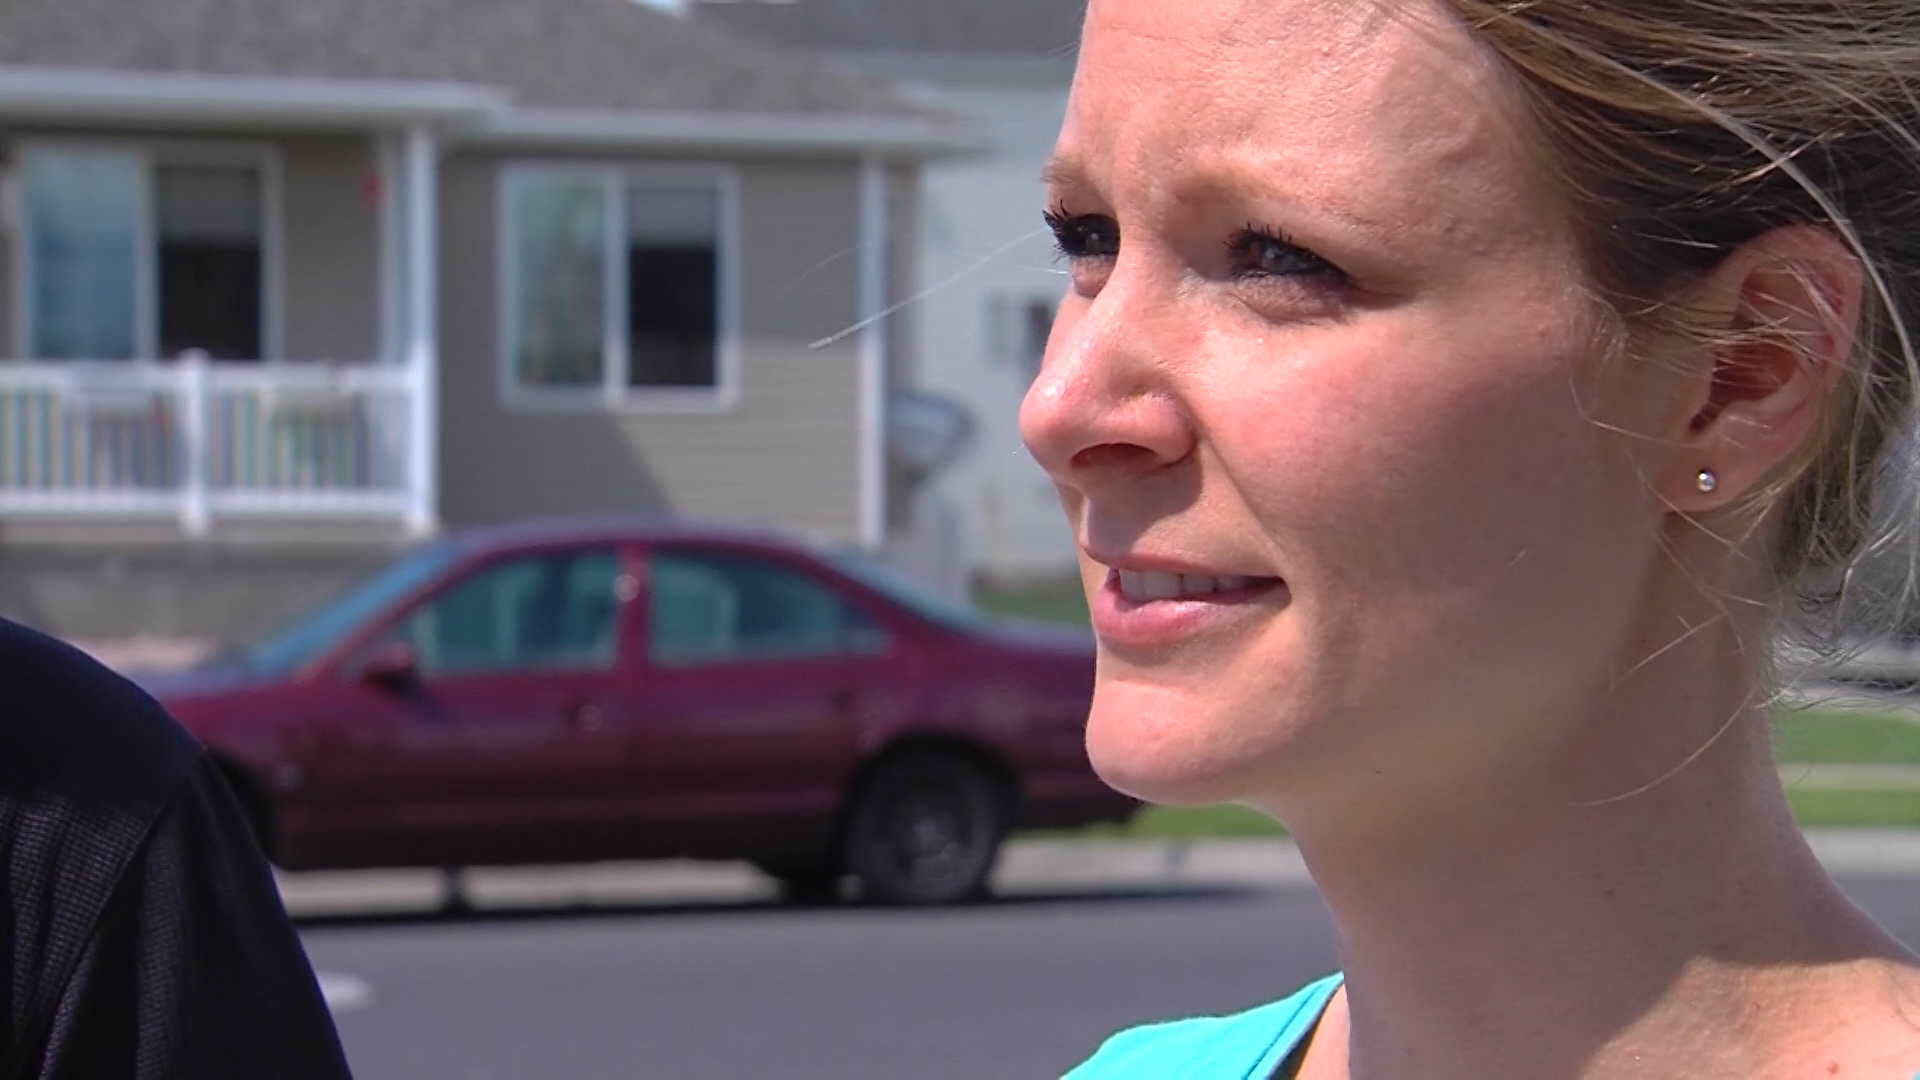 Utah woman says IRS scam call was accompanied by follow vehicle resembling police car